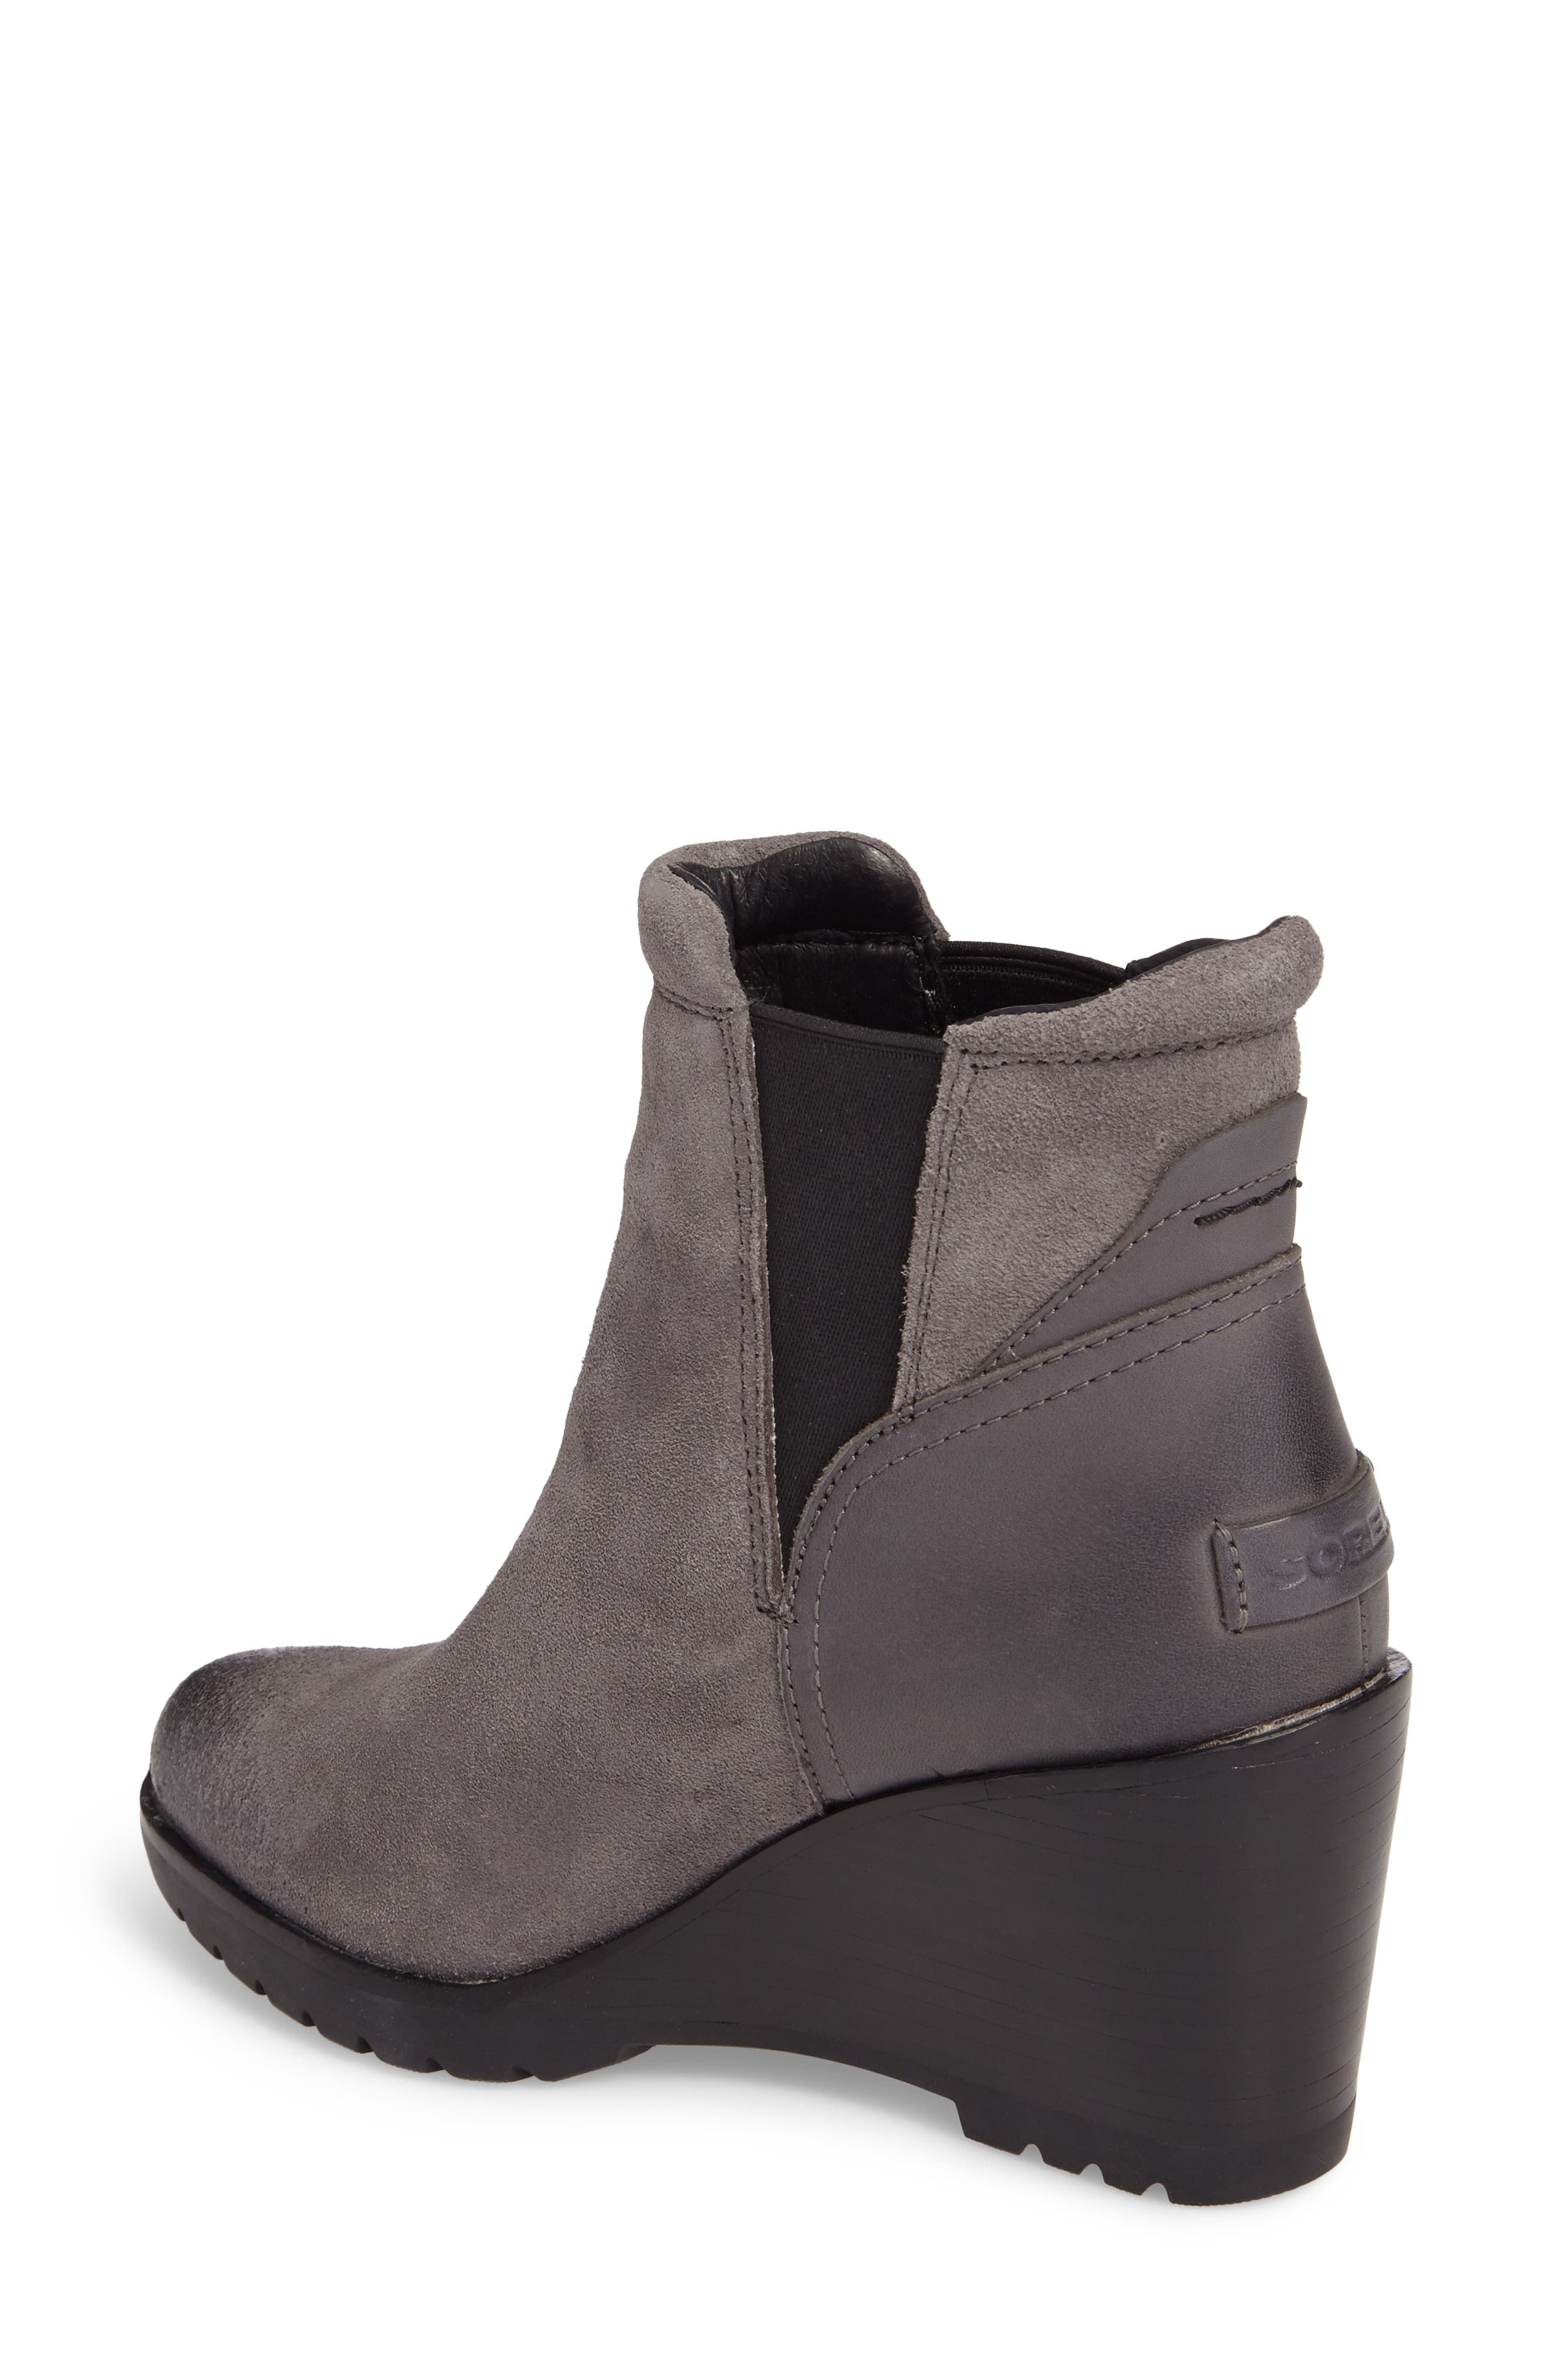 After Hours Chelsea Boot,                             Alternate thumbnail 8, color,